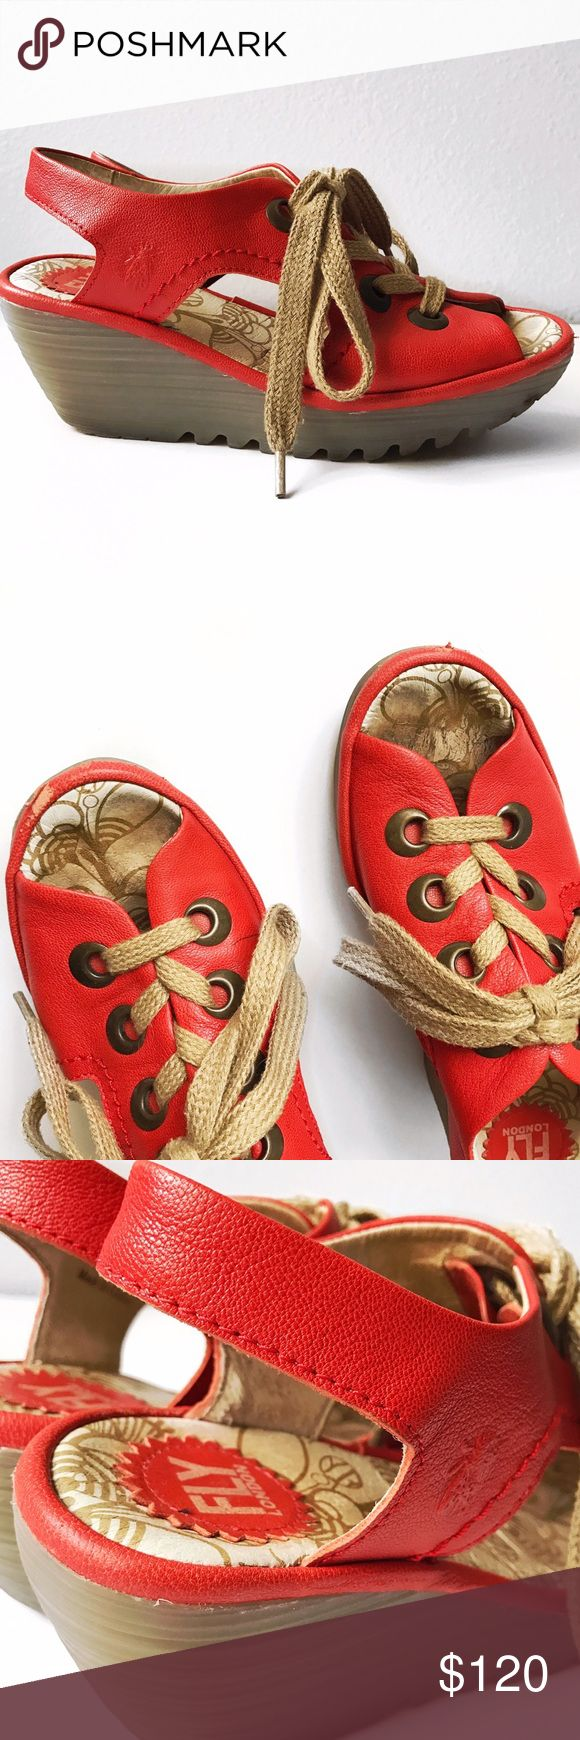 """➡Fly London Red Ylva Lace-Up Sandals⬅ I just love how cute and comfortable Fly London shoes are, especially these red wedge heels with a lace-up front. Some light wear and scuffs in the front, but overall they look amazing.  Leather upper. Lace-up style. Rubber sole. Heel measures approximately 2 1/2"""". Platform measures approximately 1"""". 💕Offers welcome. Take 30% off your entire purchase automatically at checkout when you use the bundle feature, or make an offer for your bundle. Happy…"""